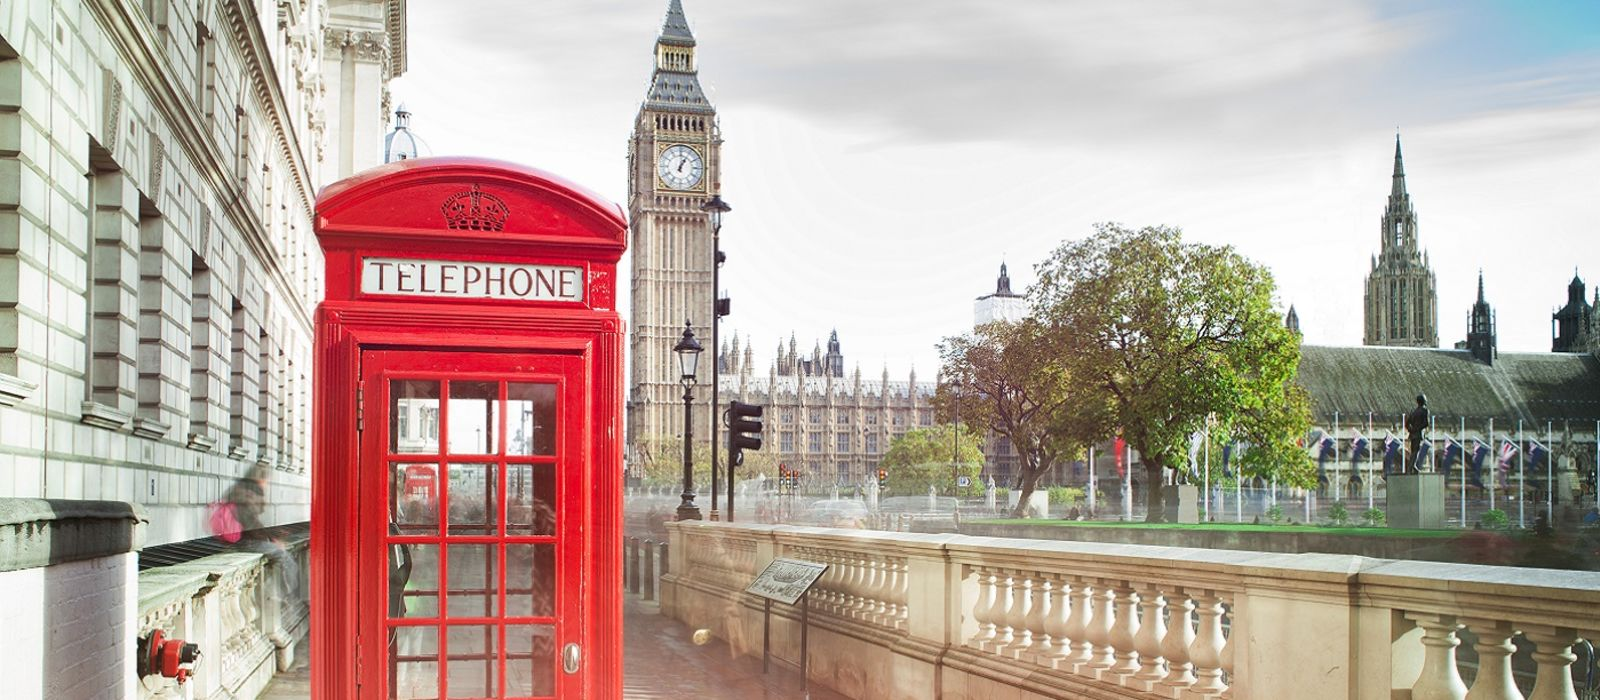 Enchanting Travels UK & Ireland Tours Big ben and red telephone box in London